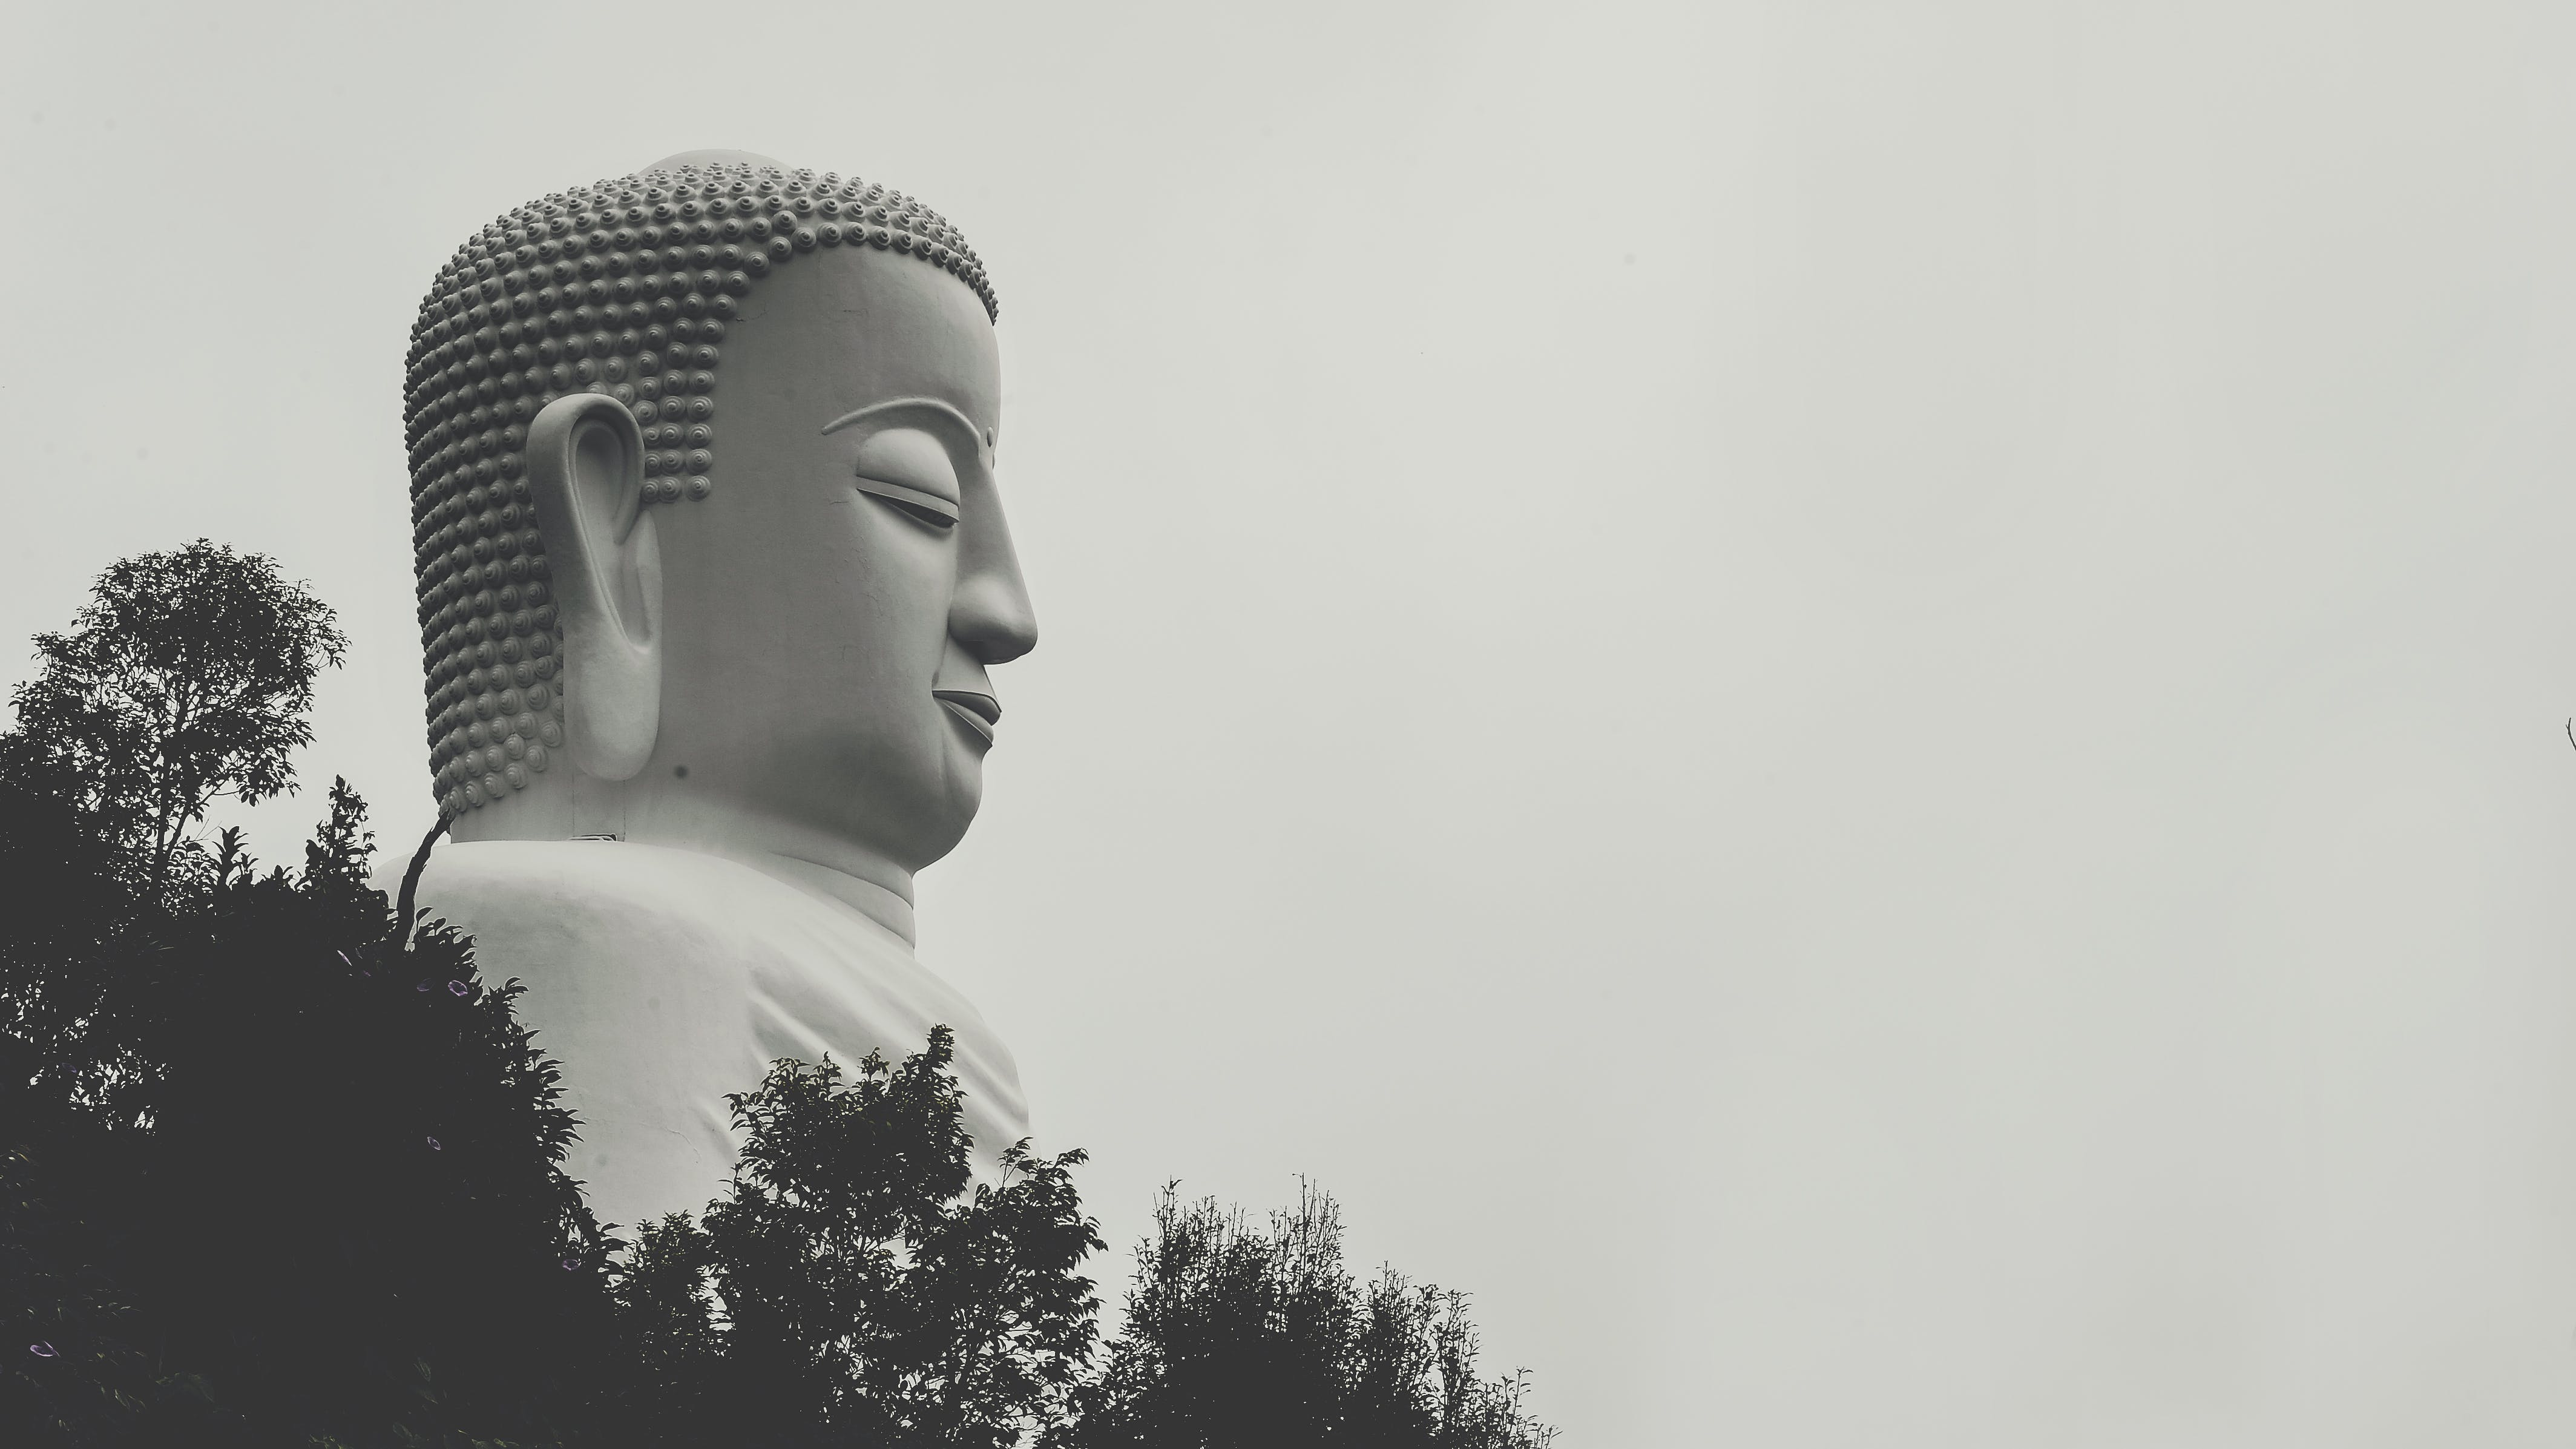 Buddha Statue Grayscale Photo